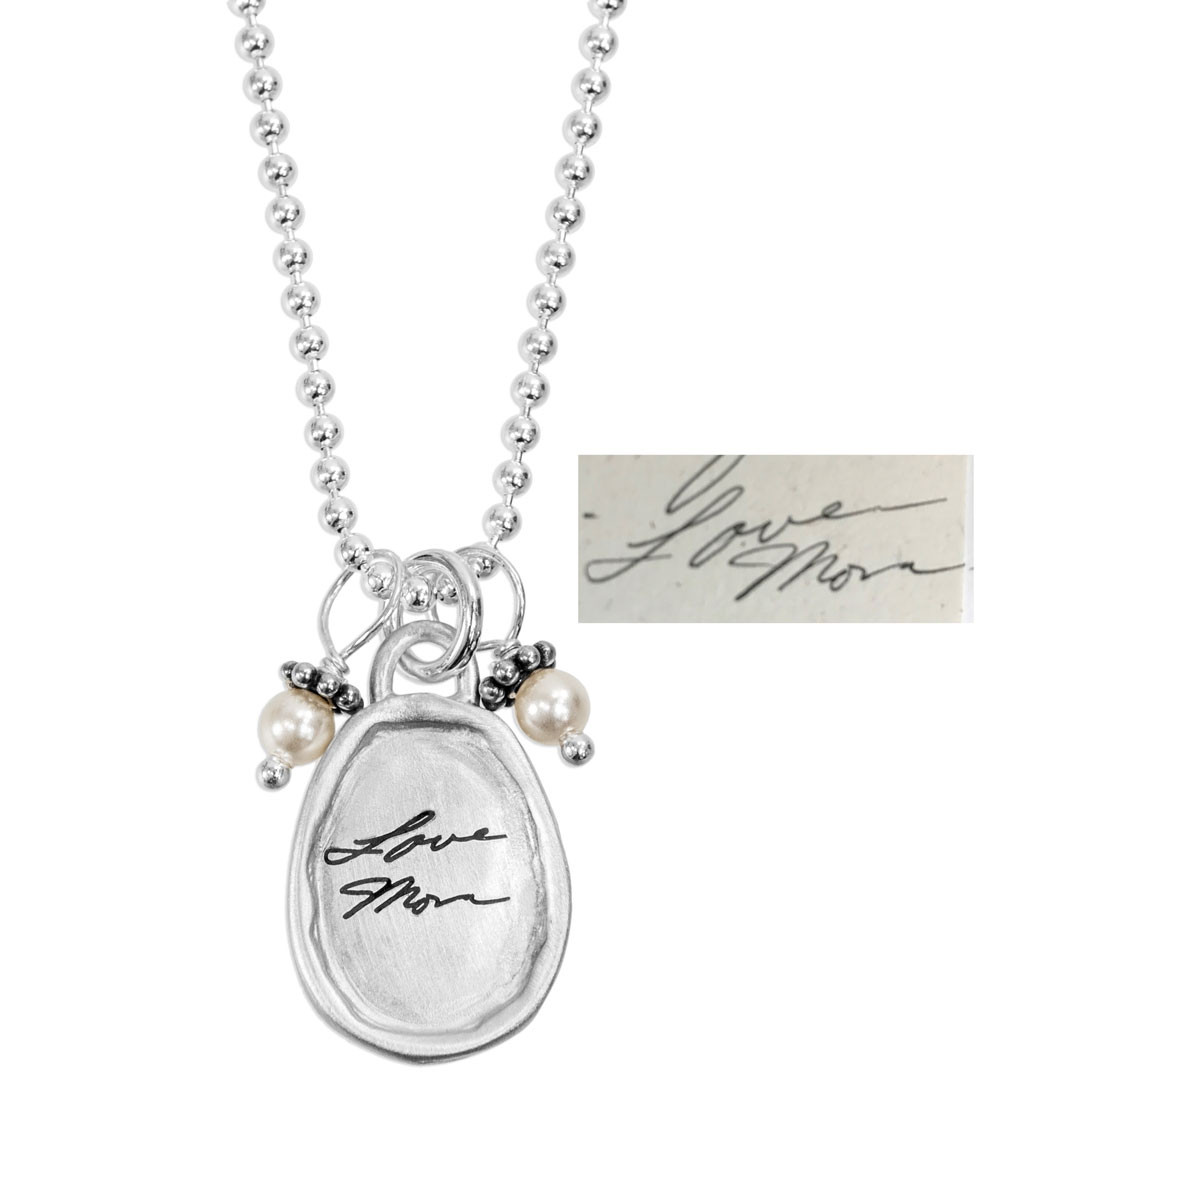 Small silver oval handwritten necklace, shown with original handwriting